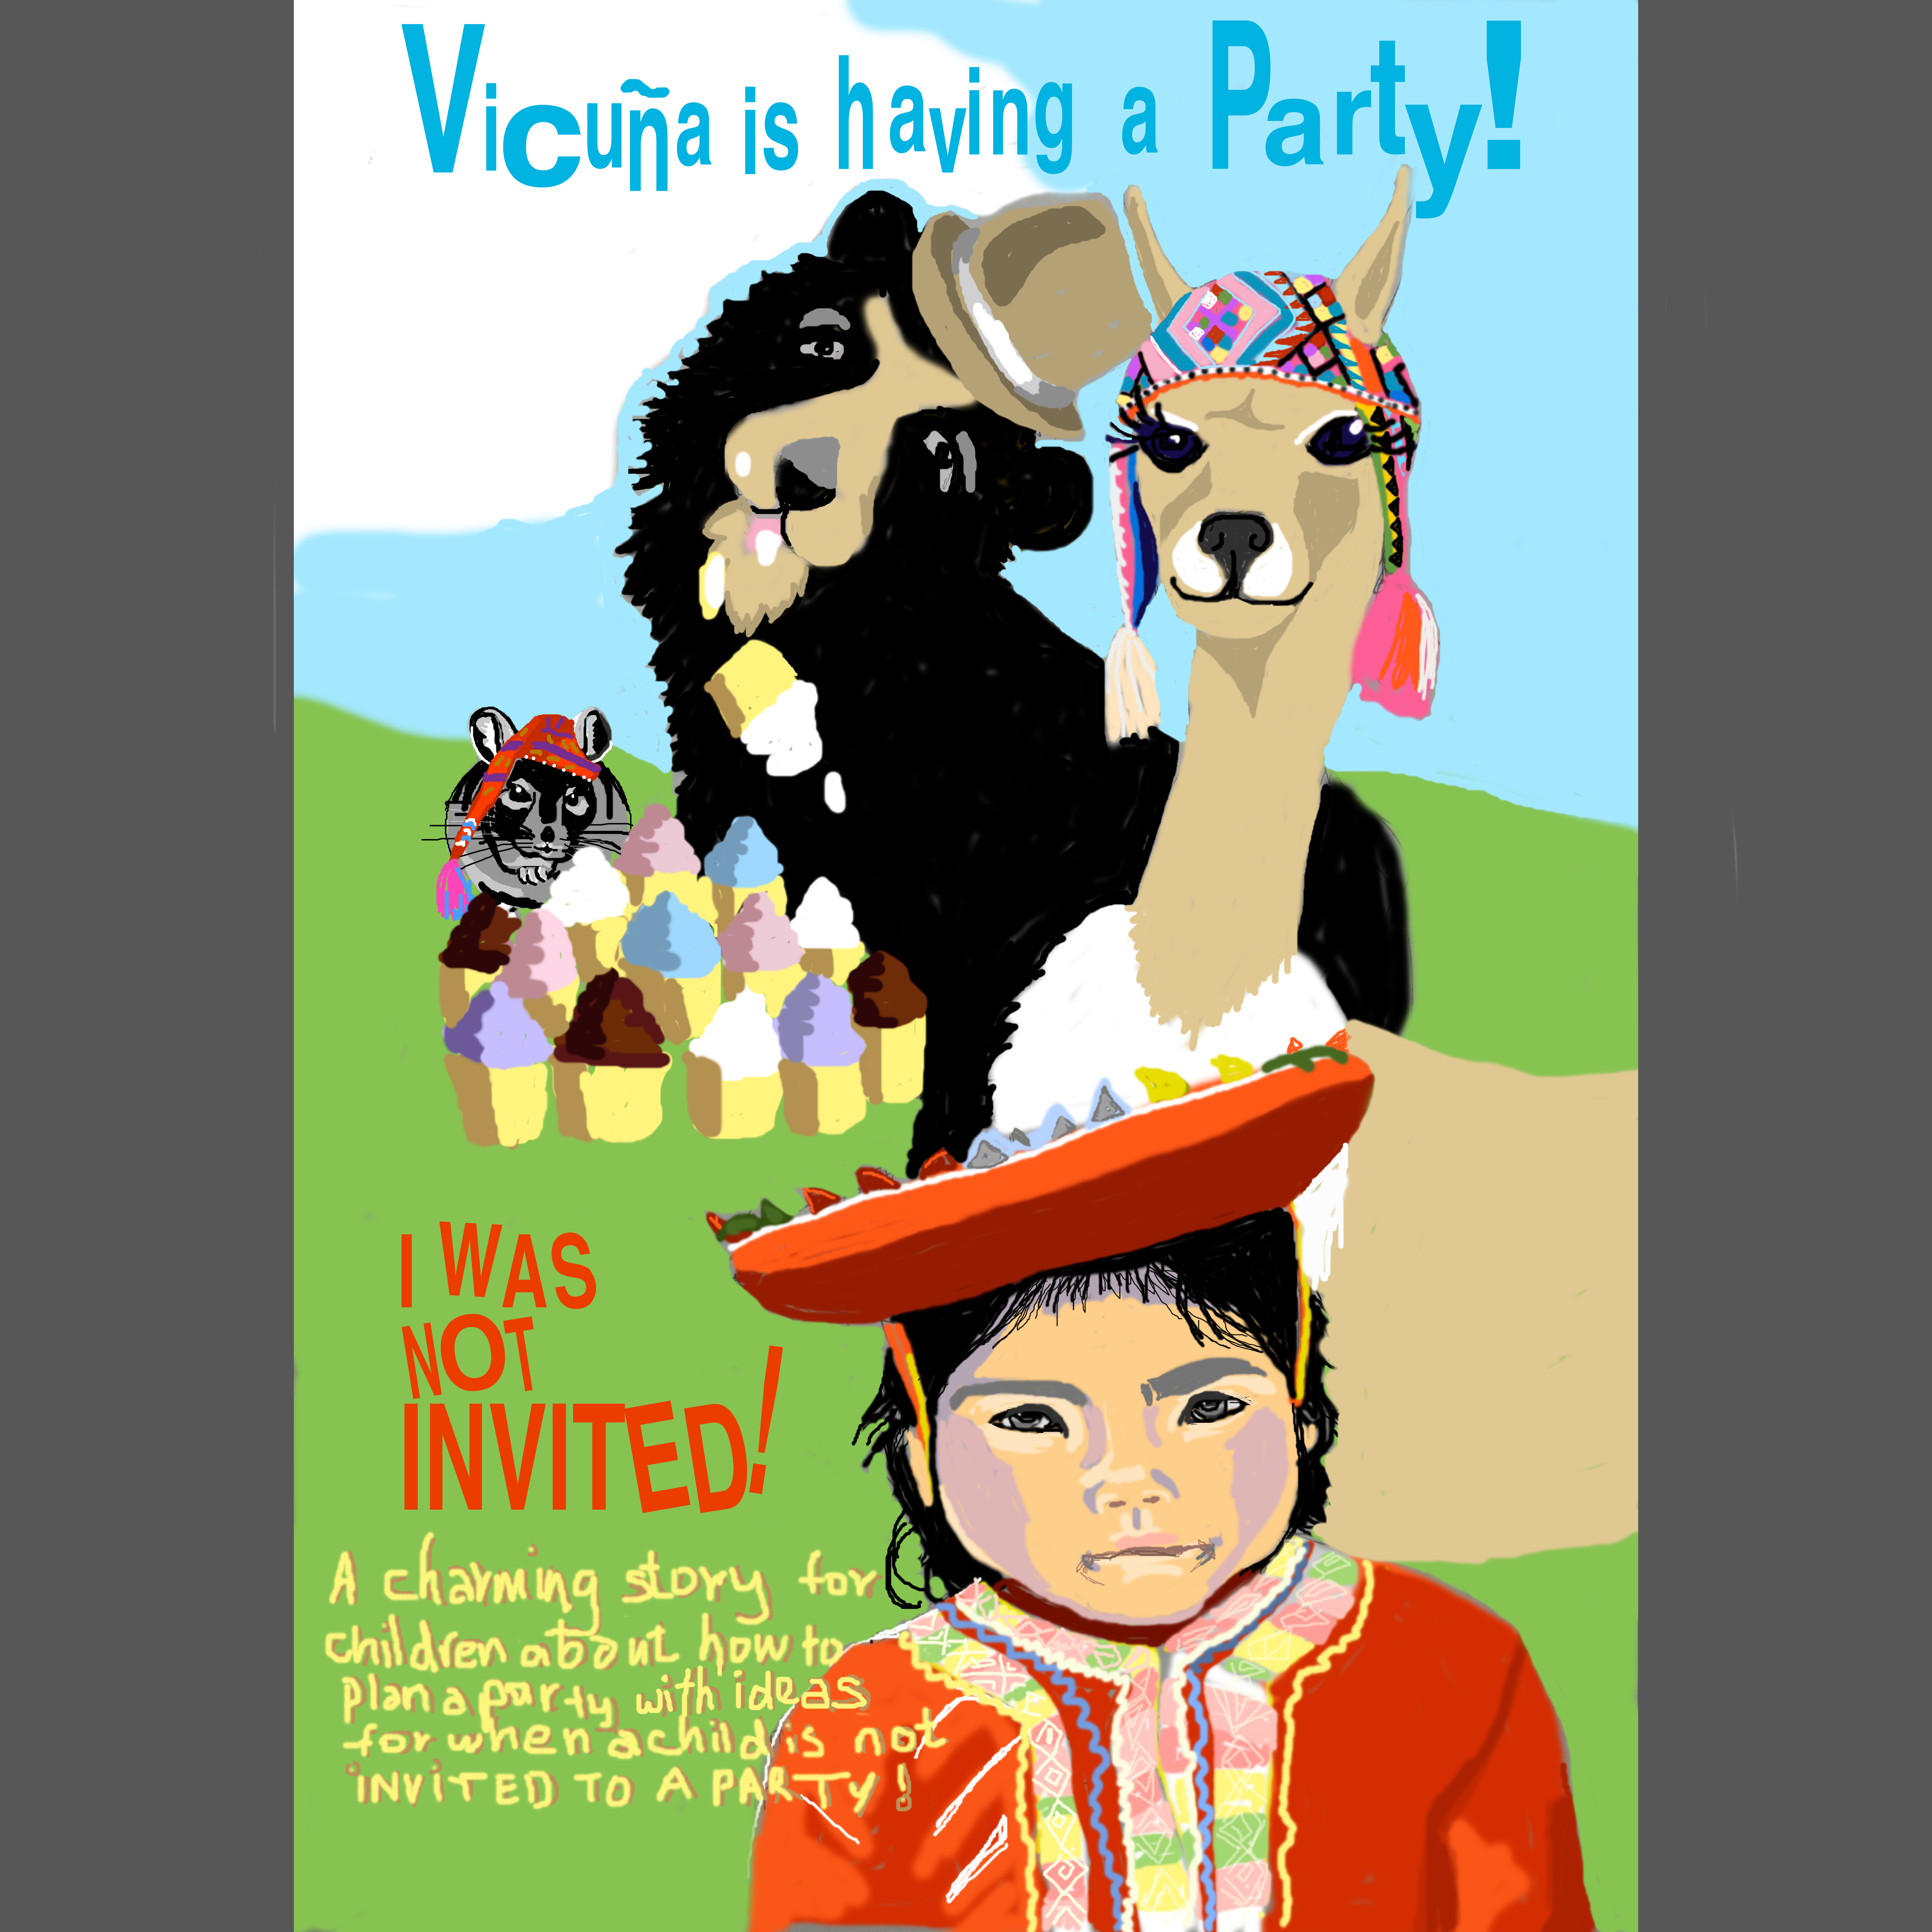 Vicuna is having a Party